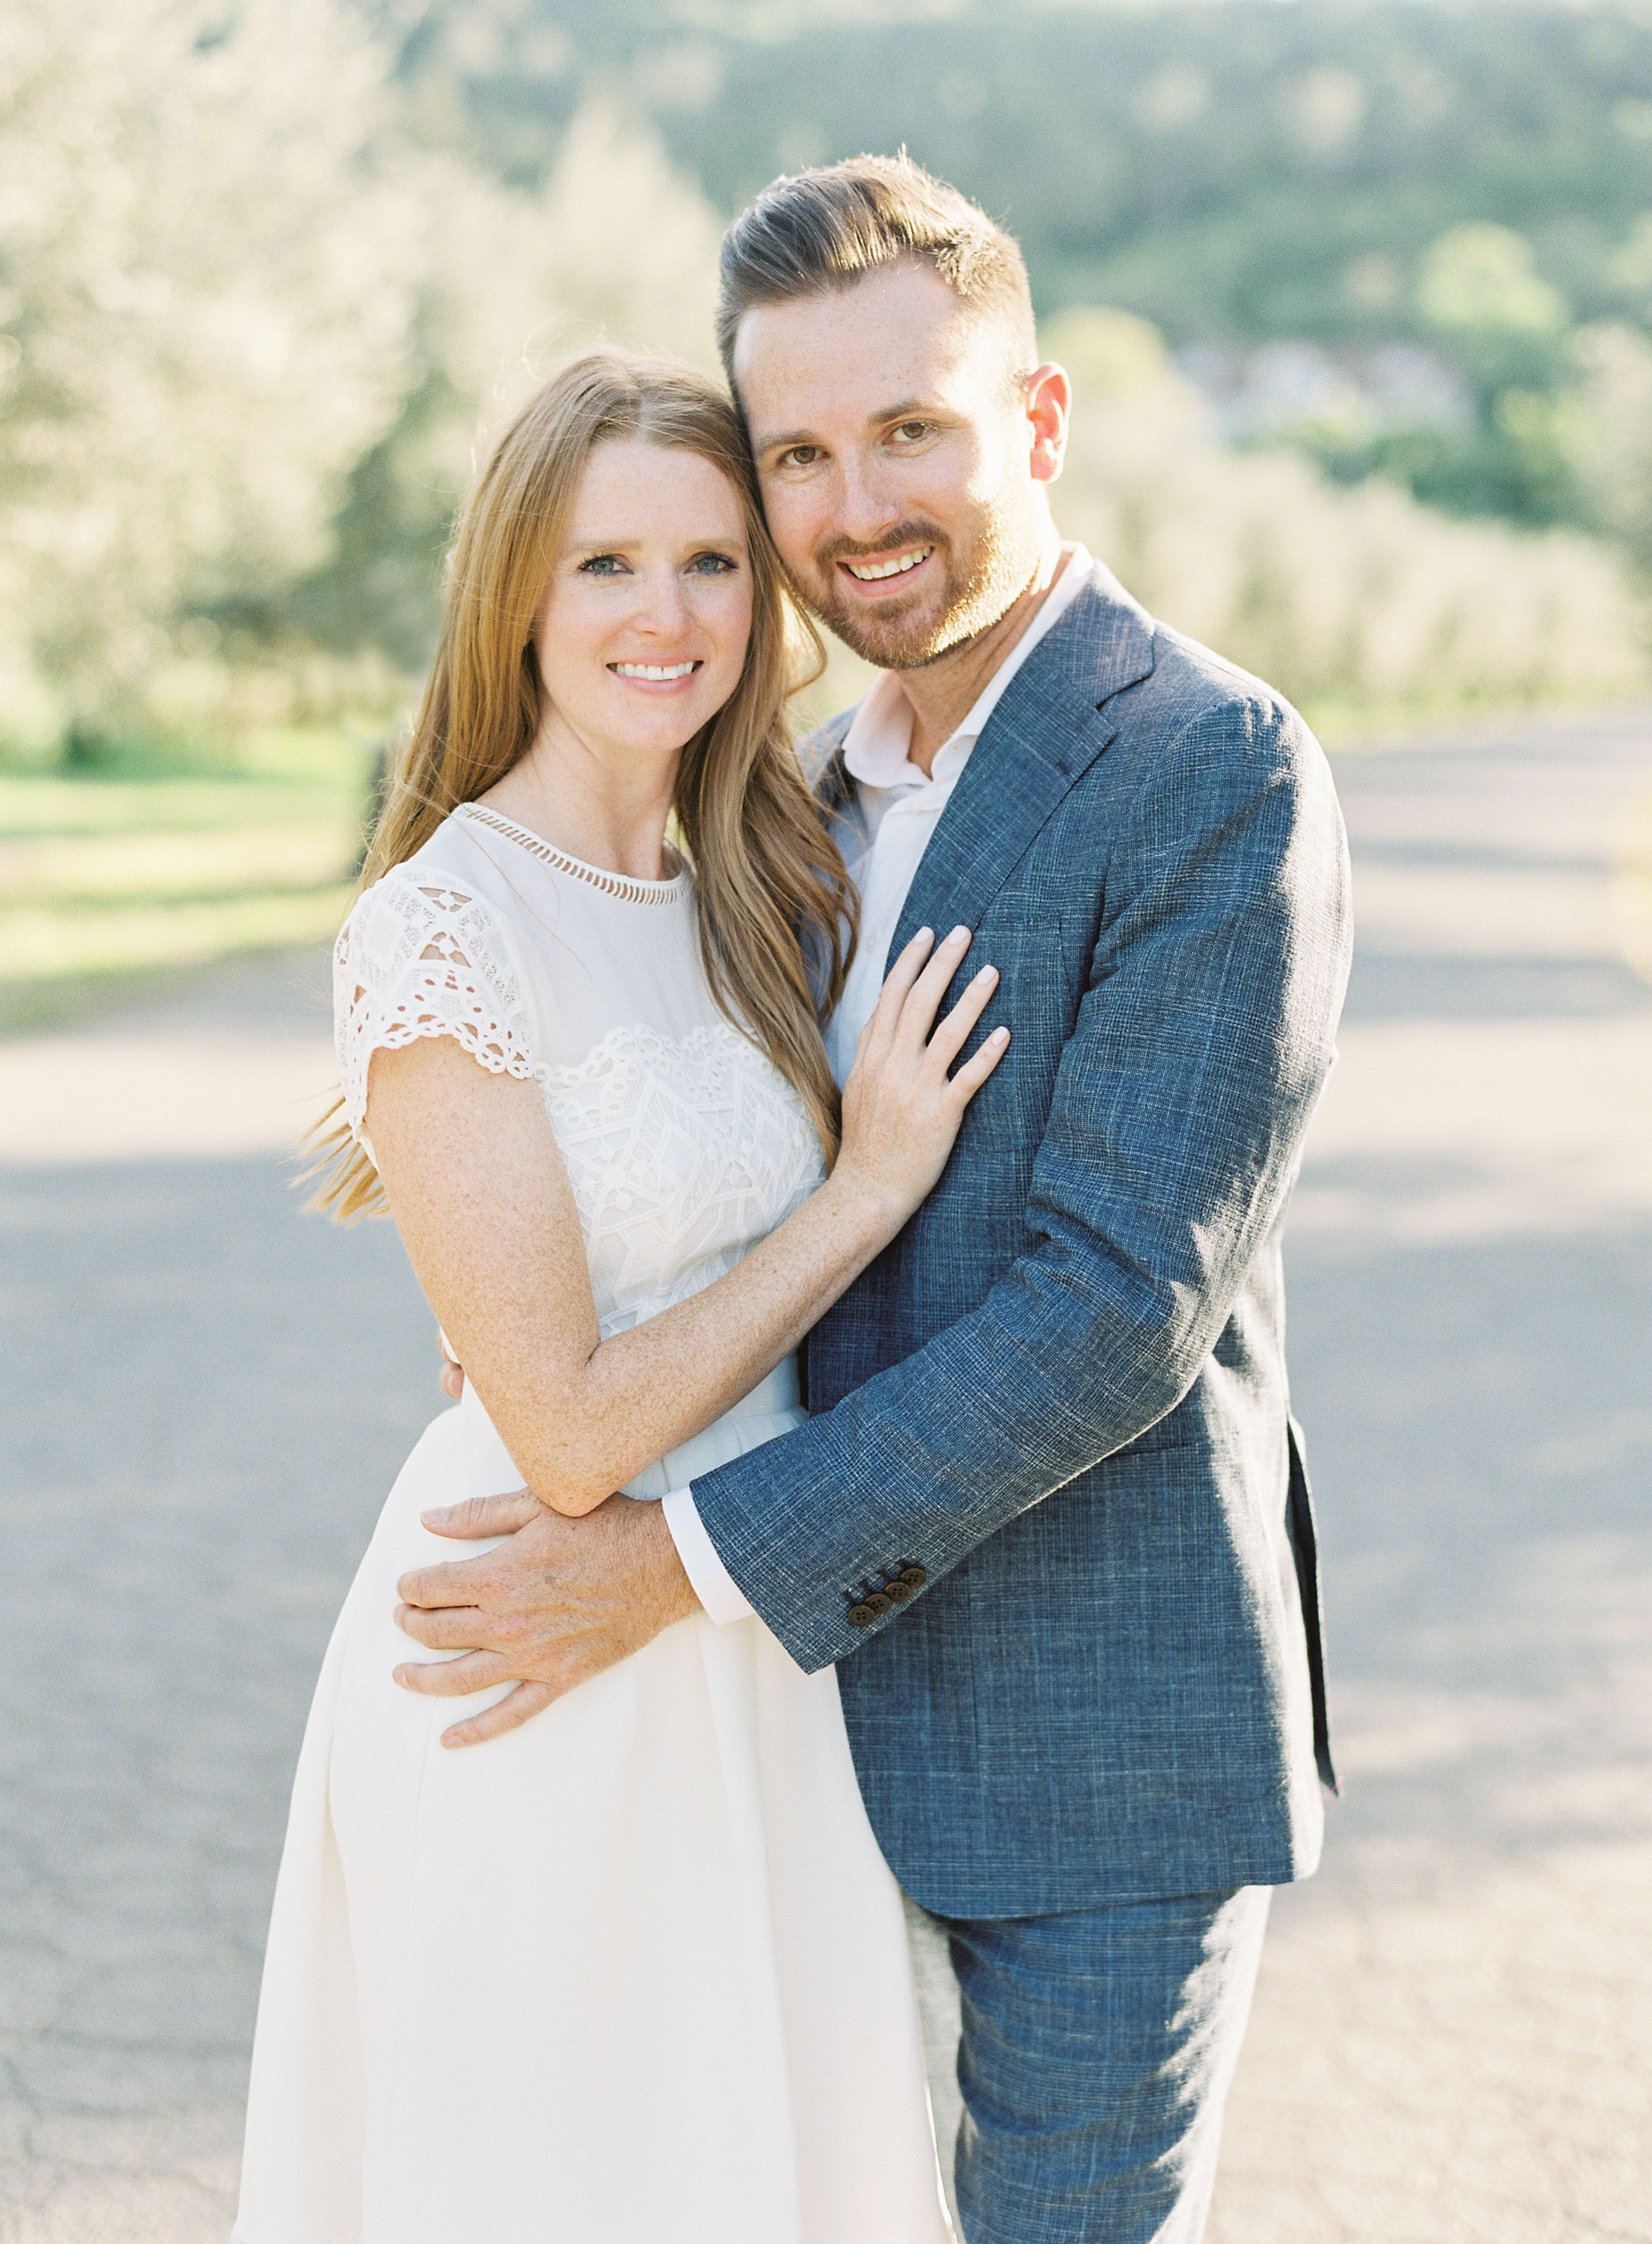 Meghan Mehan Photography - Napa Engagement Session 037.jpg